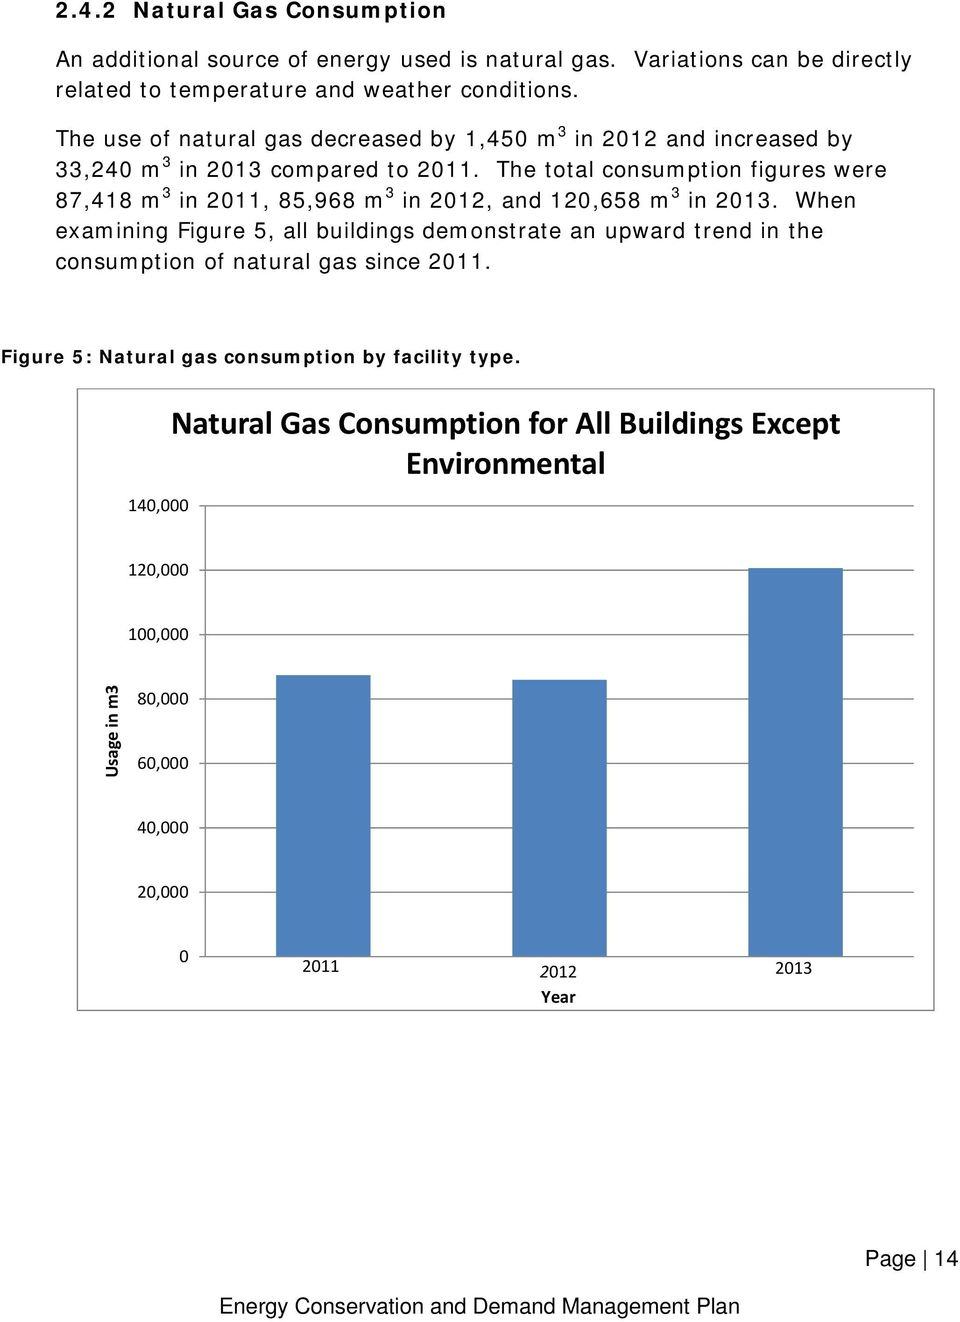 The total consumption figures were 87,418 m 3 in 2011, 85,968 m 3 in 2012, and 120,658 m 3 in 2013.